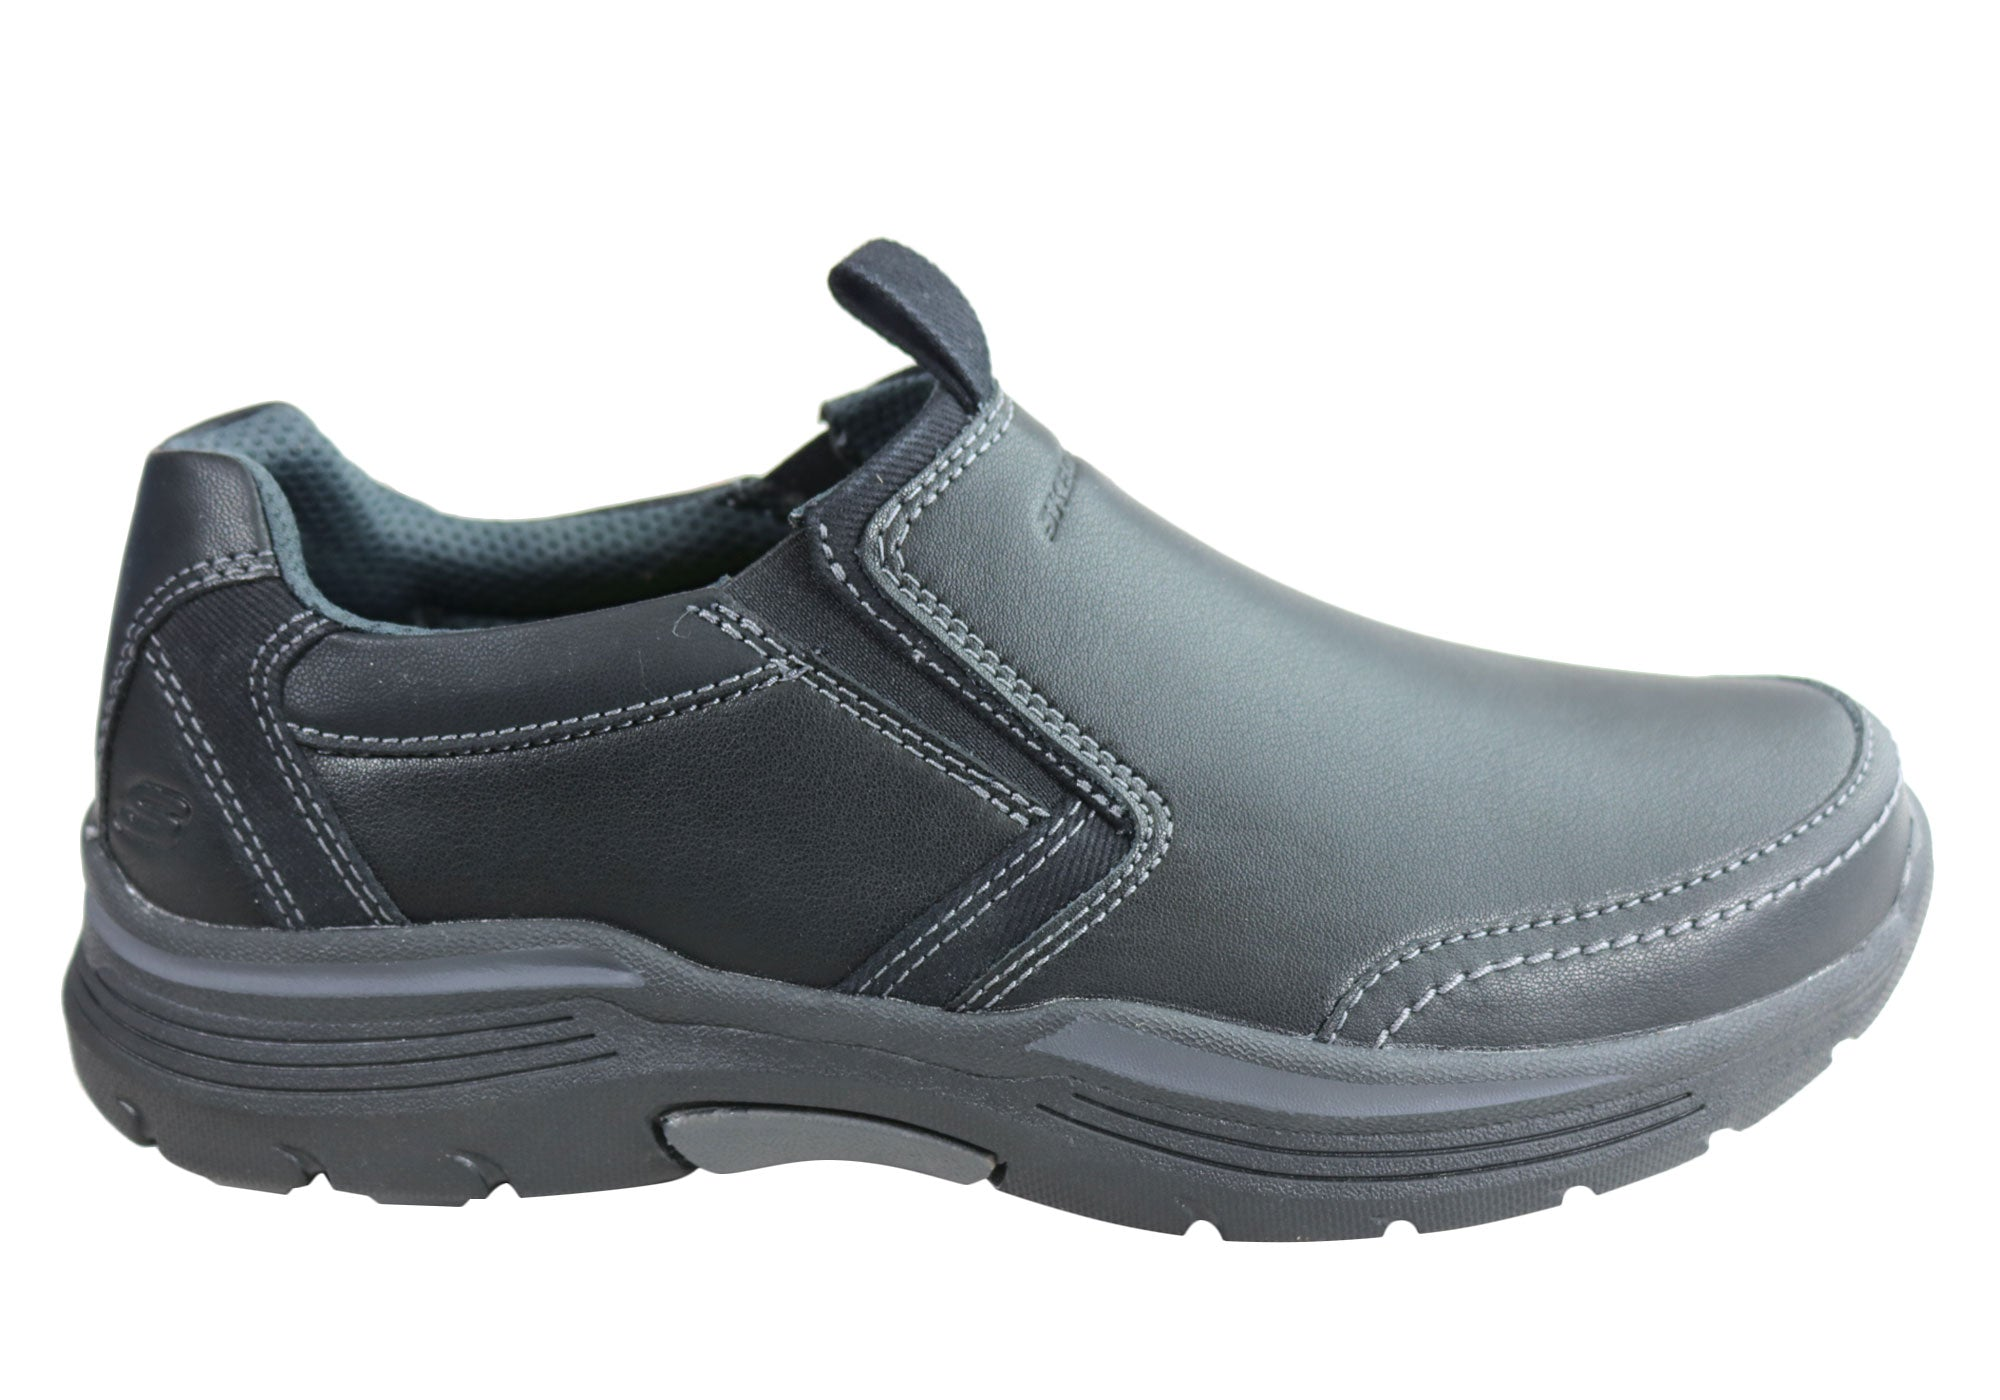 Mens-Skechers-Relaxed-Fit-Expended-Morgo-Memory-Foam-Leather-Shoes-ModeShoesAU thumbnail 13